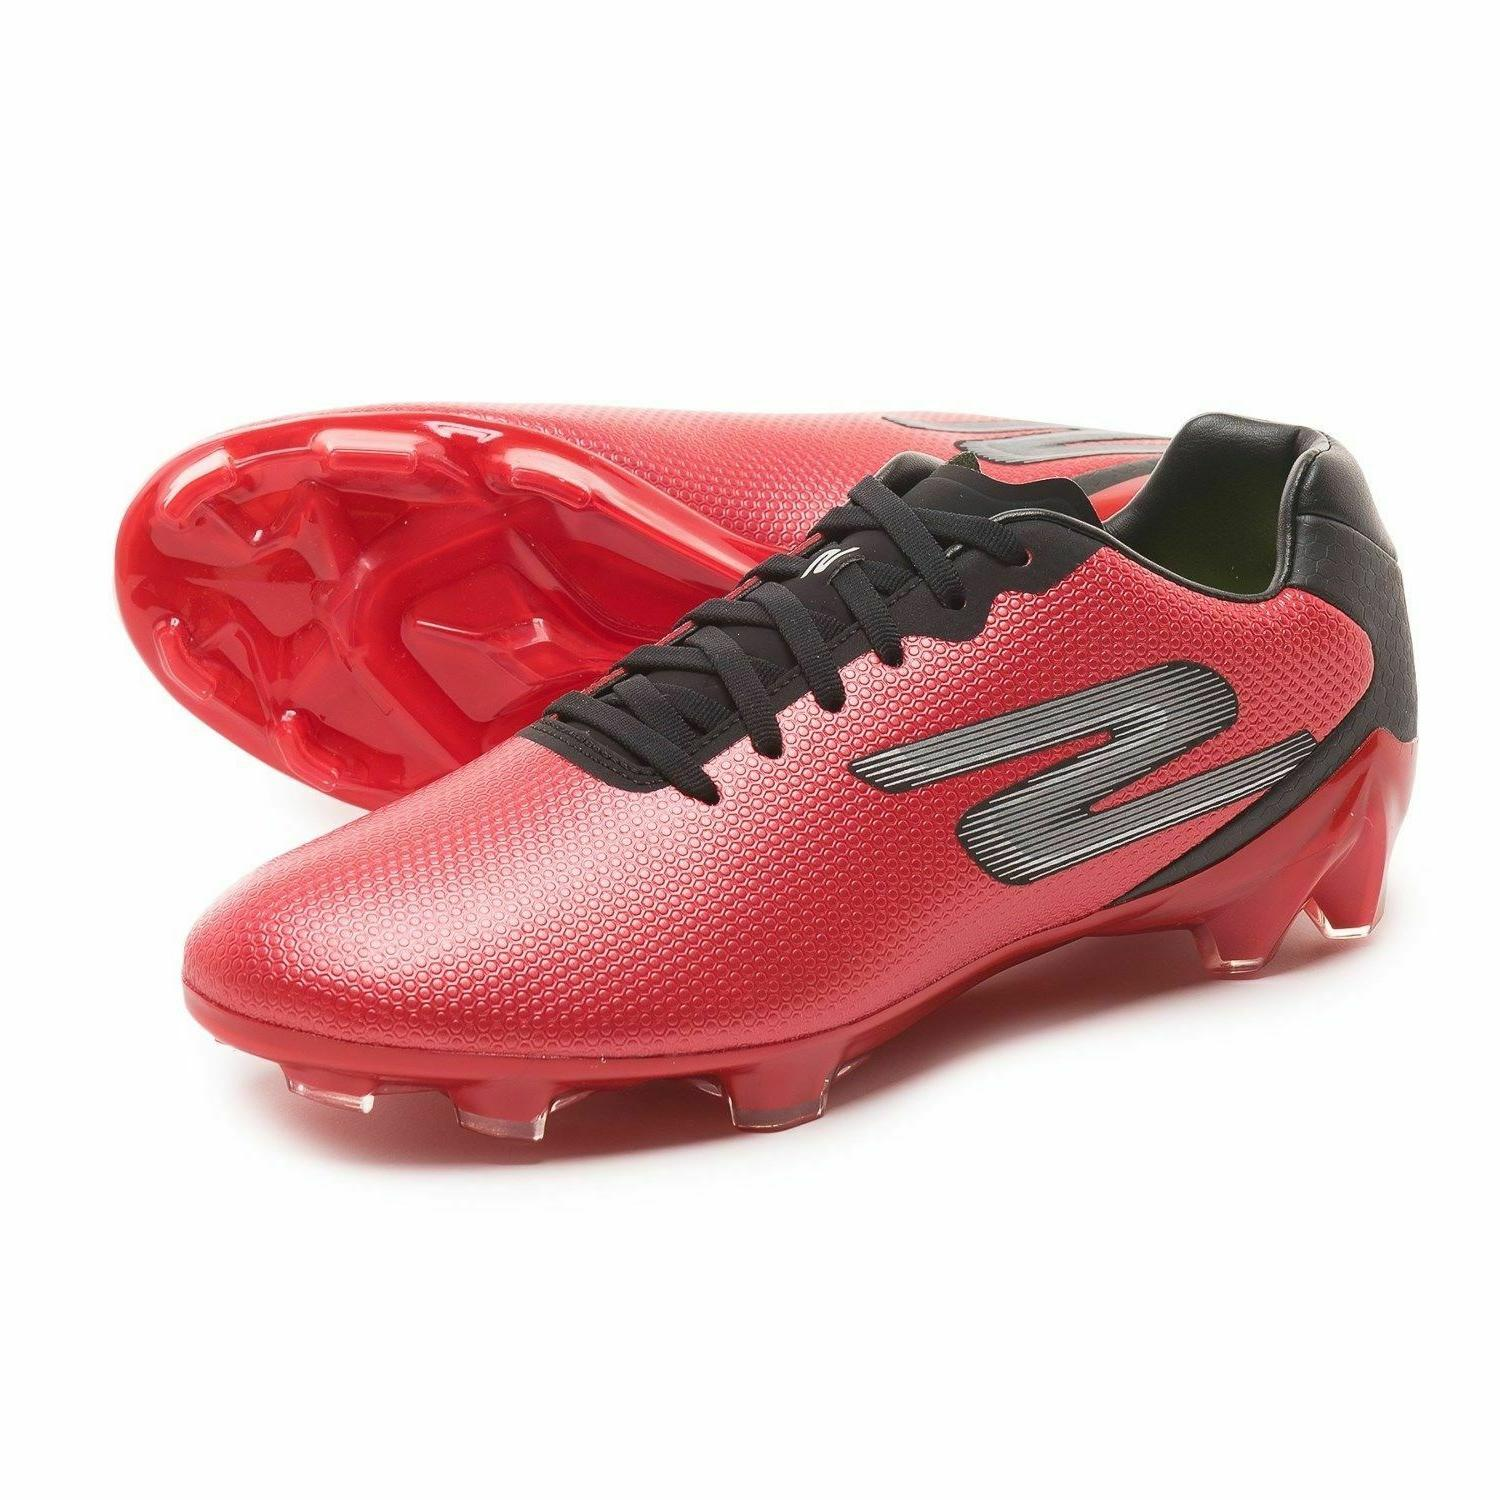 NEW - Skechers Men's Go Galaxy FG Soccer Cleats - Men's Size